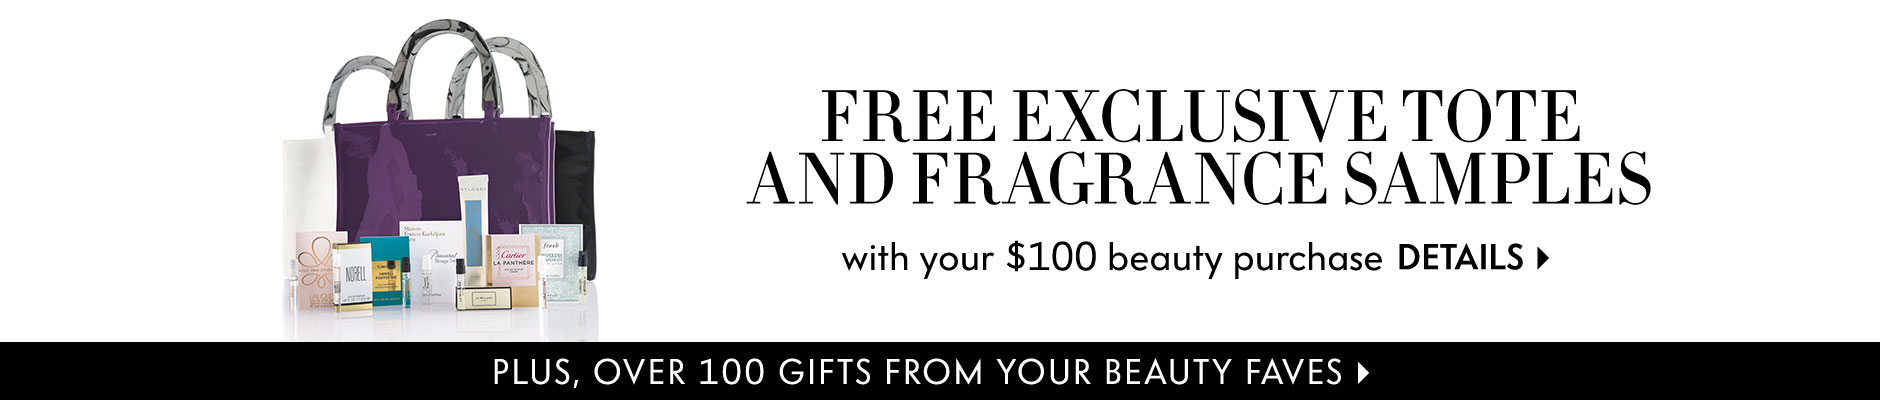 The Gift of Beauty - Free exclusive tote and fragrance samples with your $100 beauty purchase.